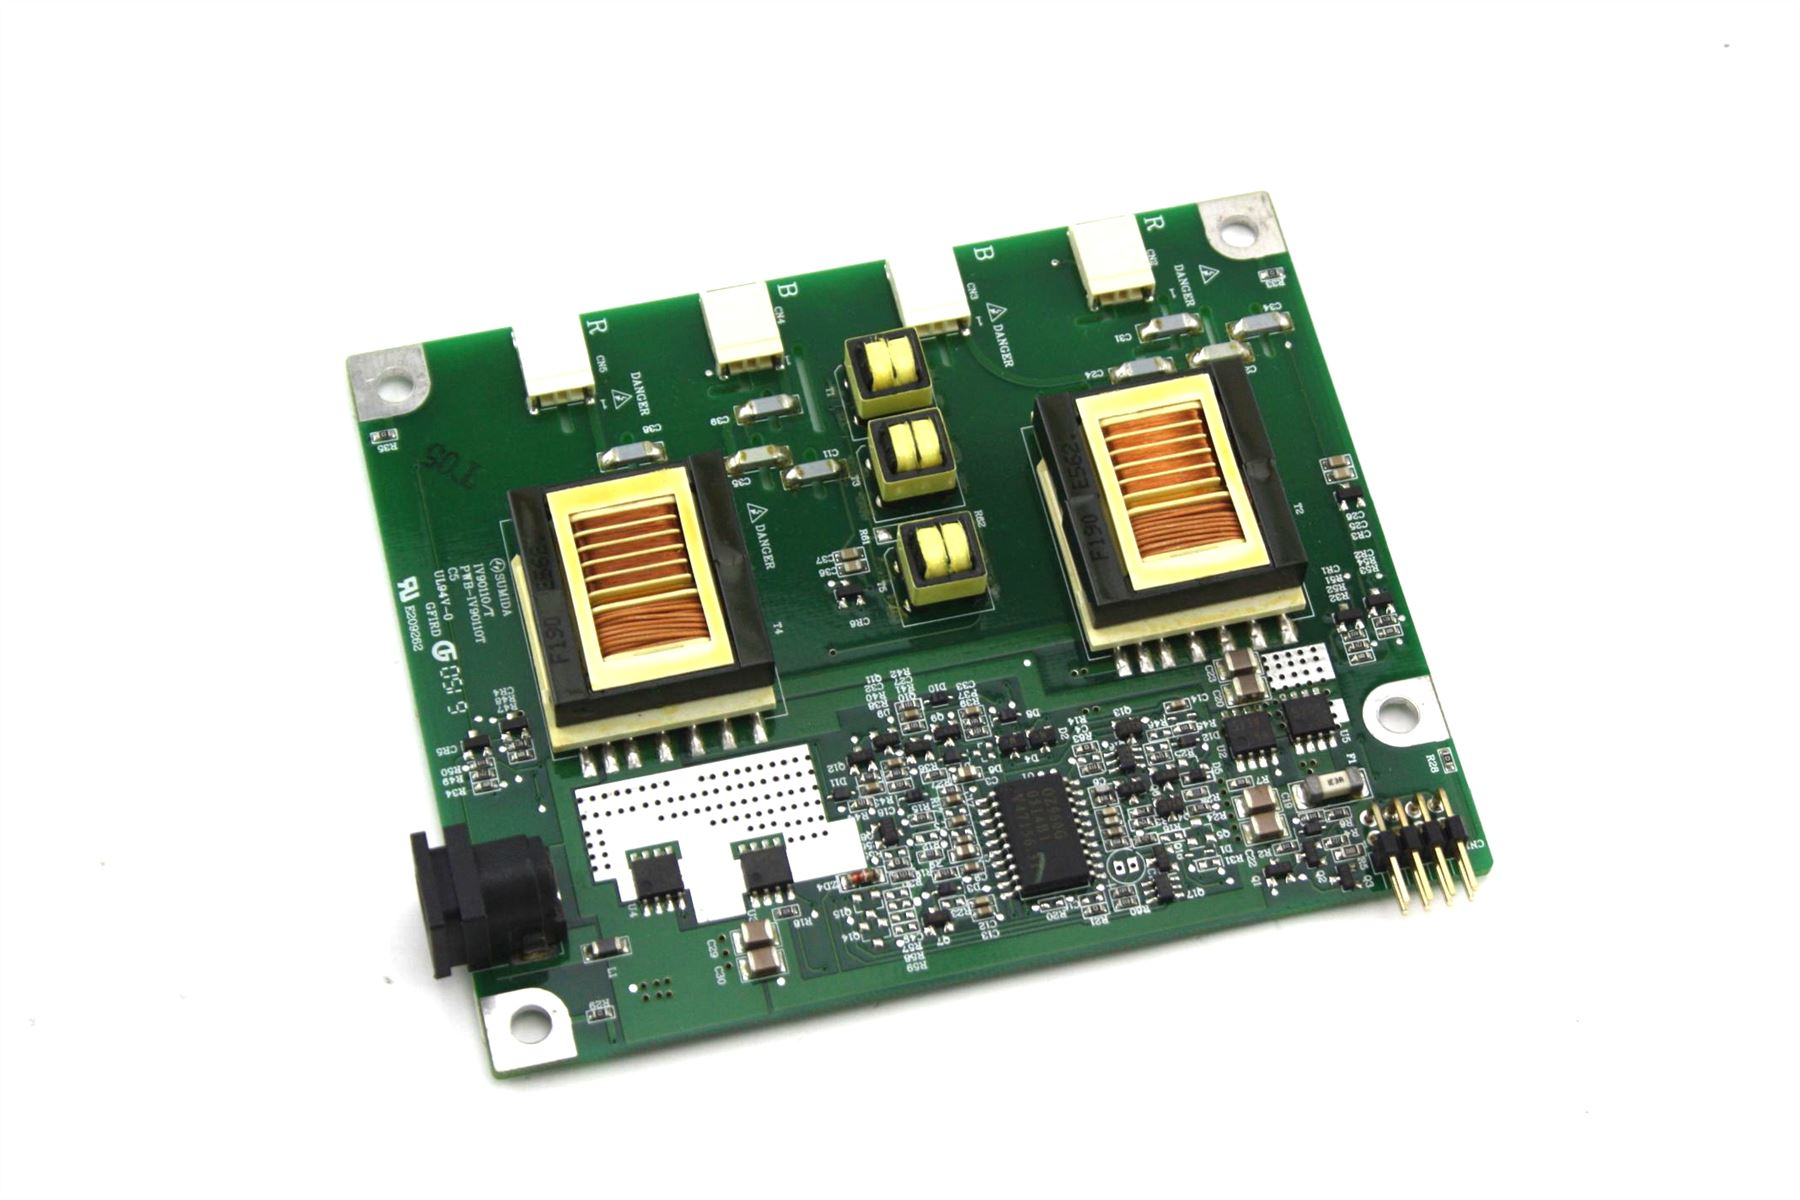 Details about Genuine Acer AC1703sm T Sumida LCD Monitor Inverter Board  PWB-IV90110T